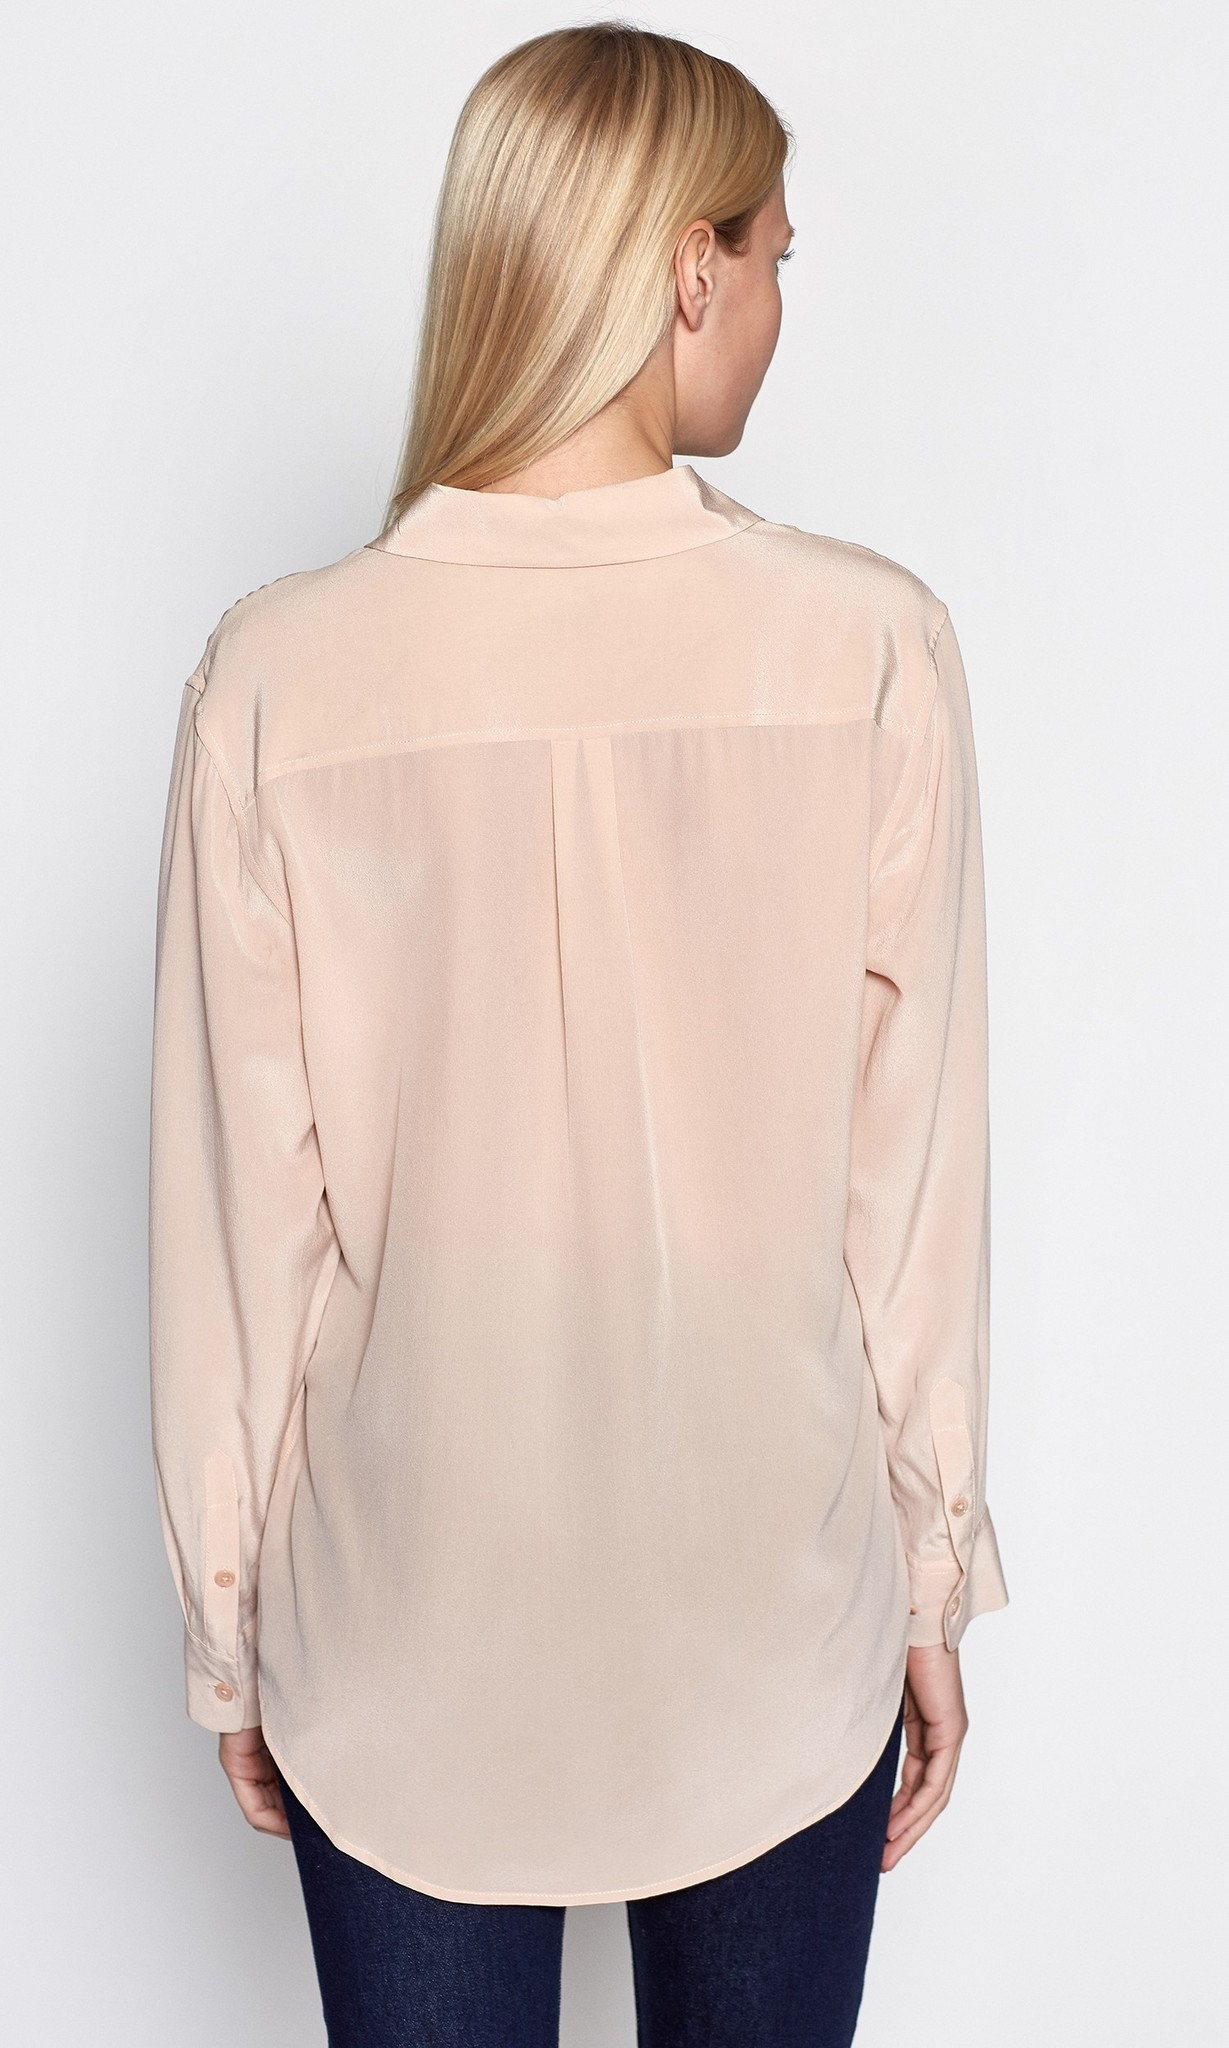 Signature blouse french nude